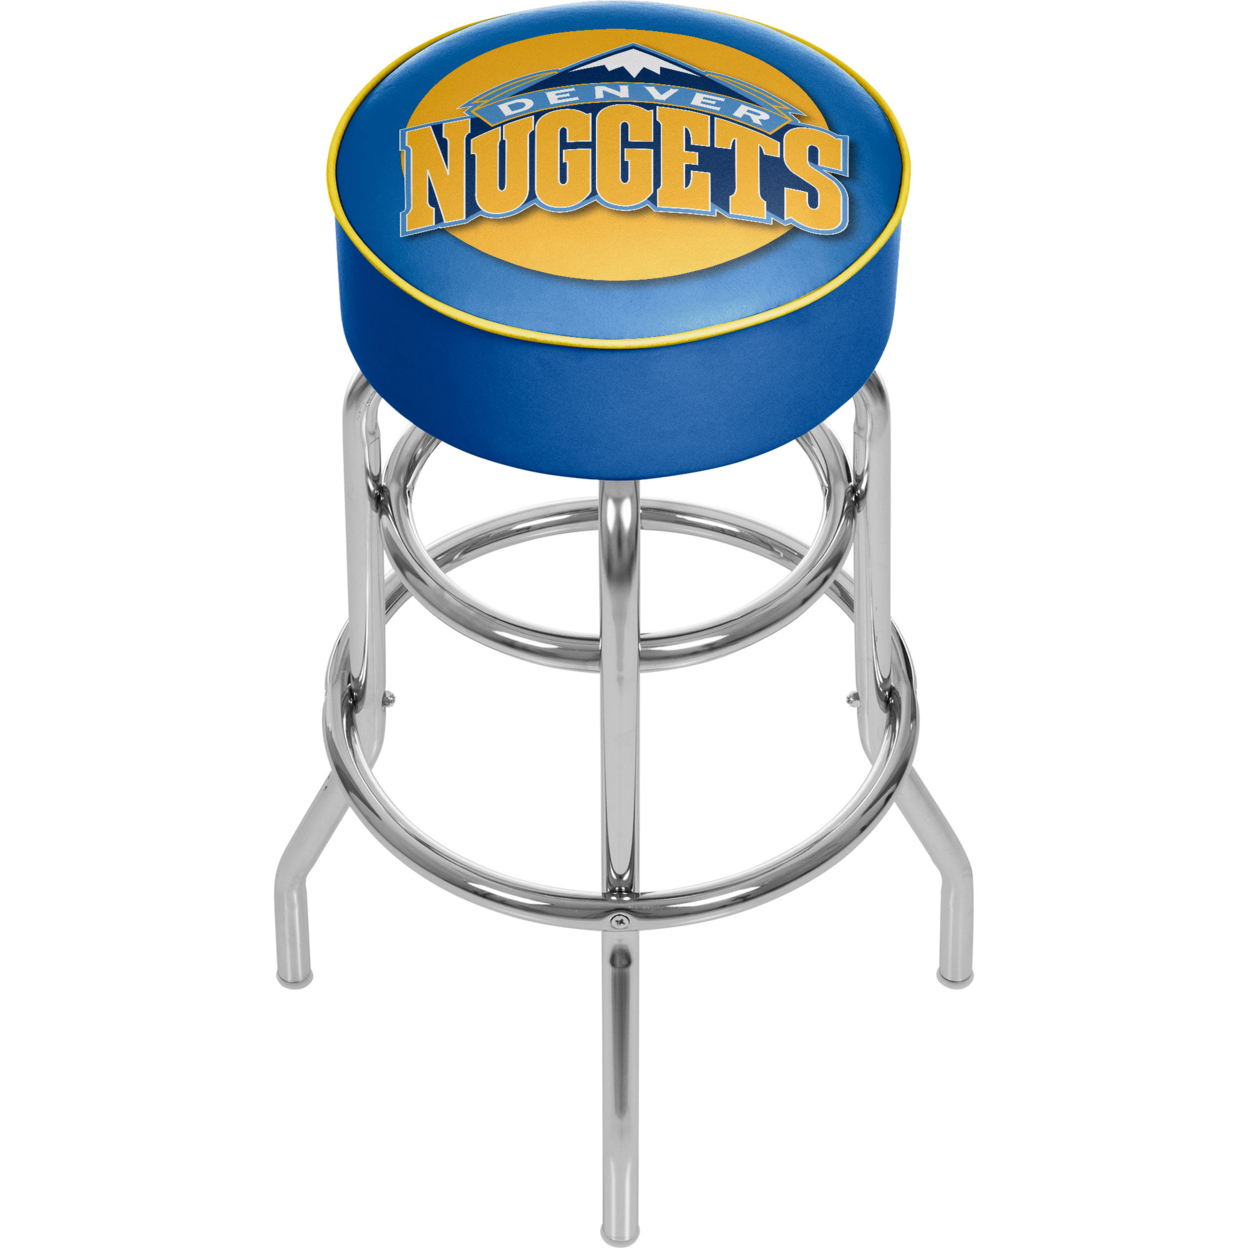 Denver Nuggets NBA Padded Swivel Bar Stool 30 Inches High фанатская атрибутика nike curry nba